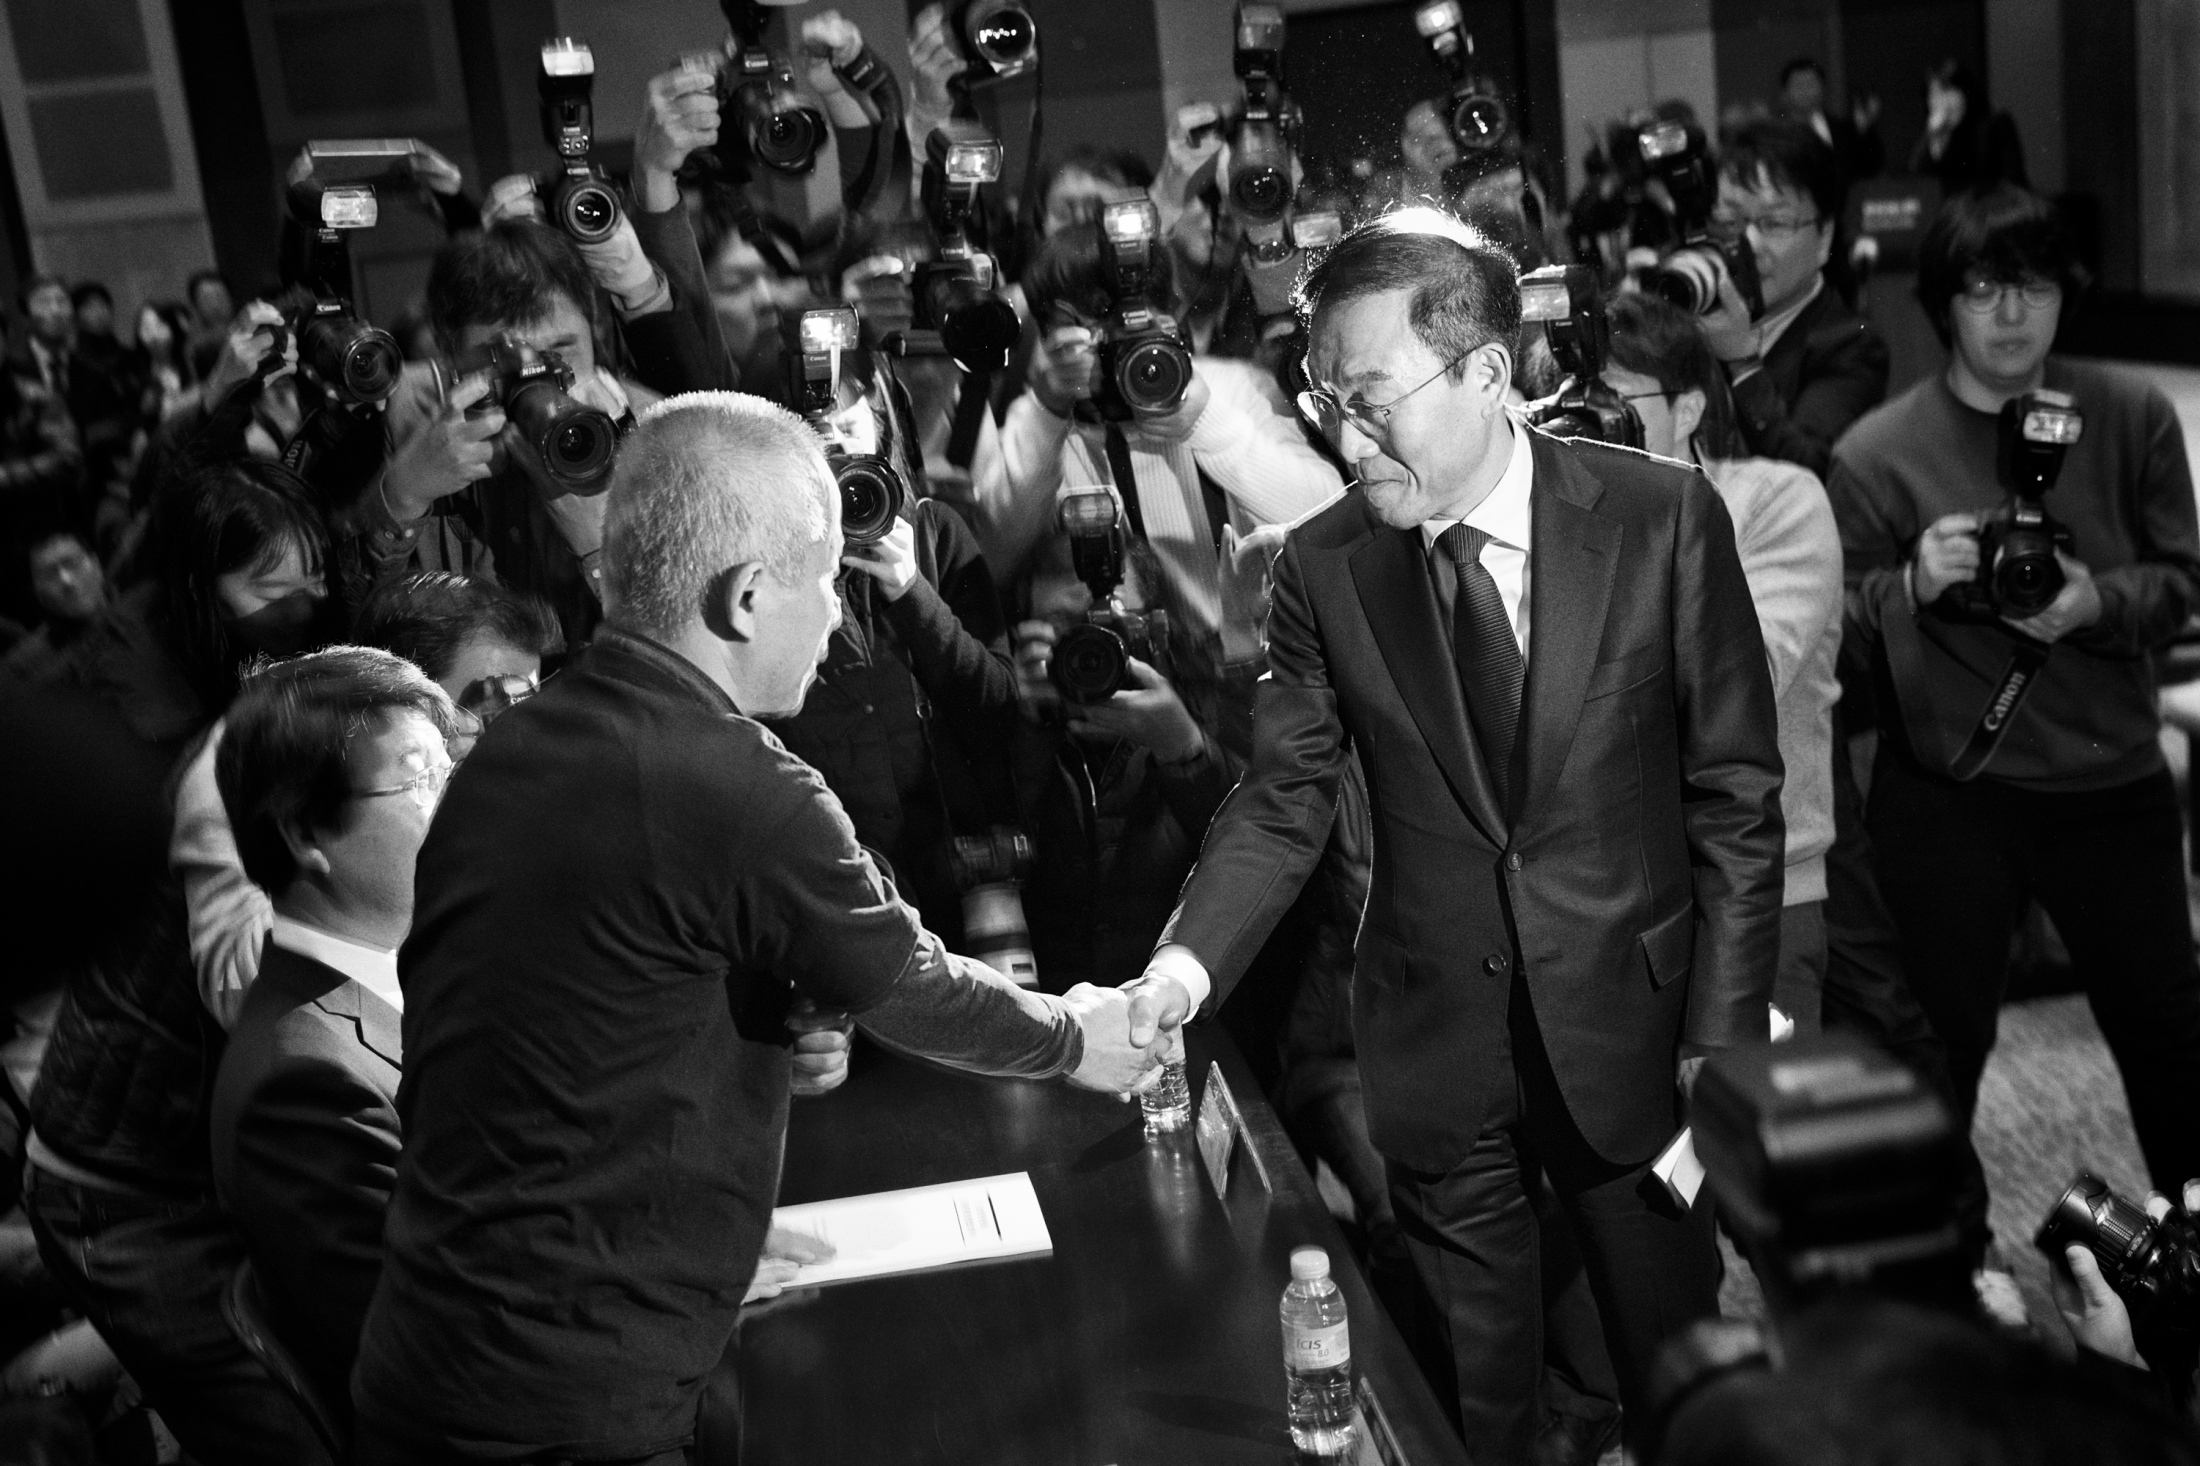 Hwang Sang-ki, a father of the late Hwang Yu-mi who died of leukemia due to toxic chemicals from Samsung Electronics semiconductor chip factory and Kim Ki-nam, the vice president and CEO of Samsung Electronics shake hands right after Kim's apology to the victims and their families at the press conference for Samsung Electronics' apology to the victims and signing of the settlement at Korea Press Center in Seoul, South Korea on Nov. 23, 2018.